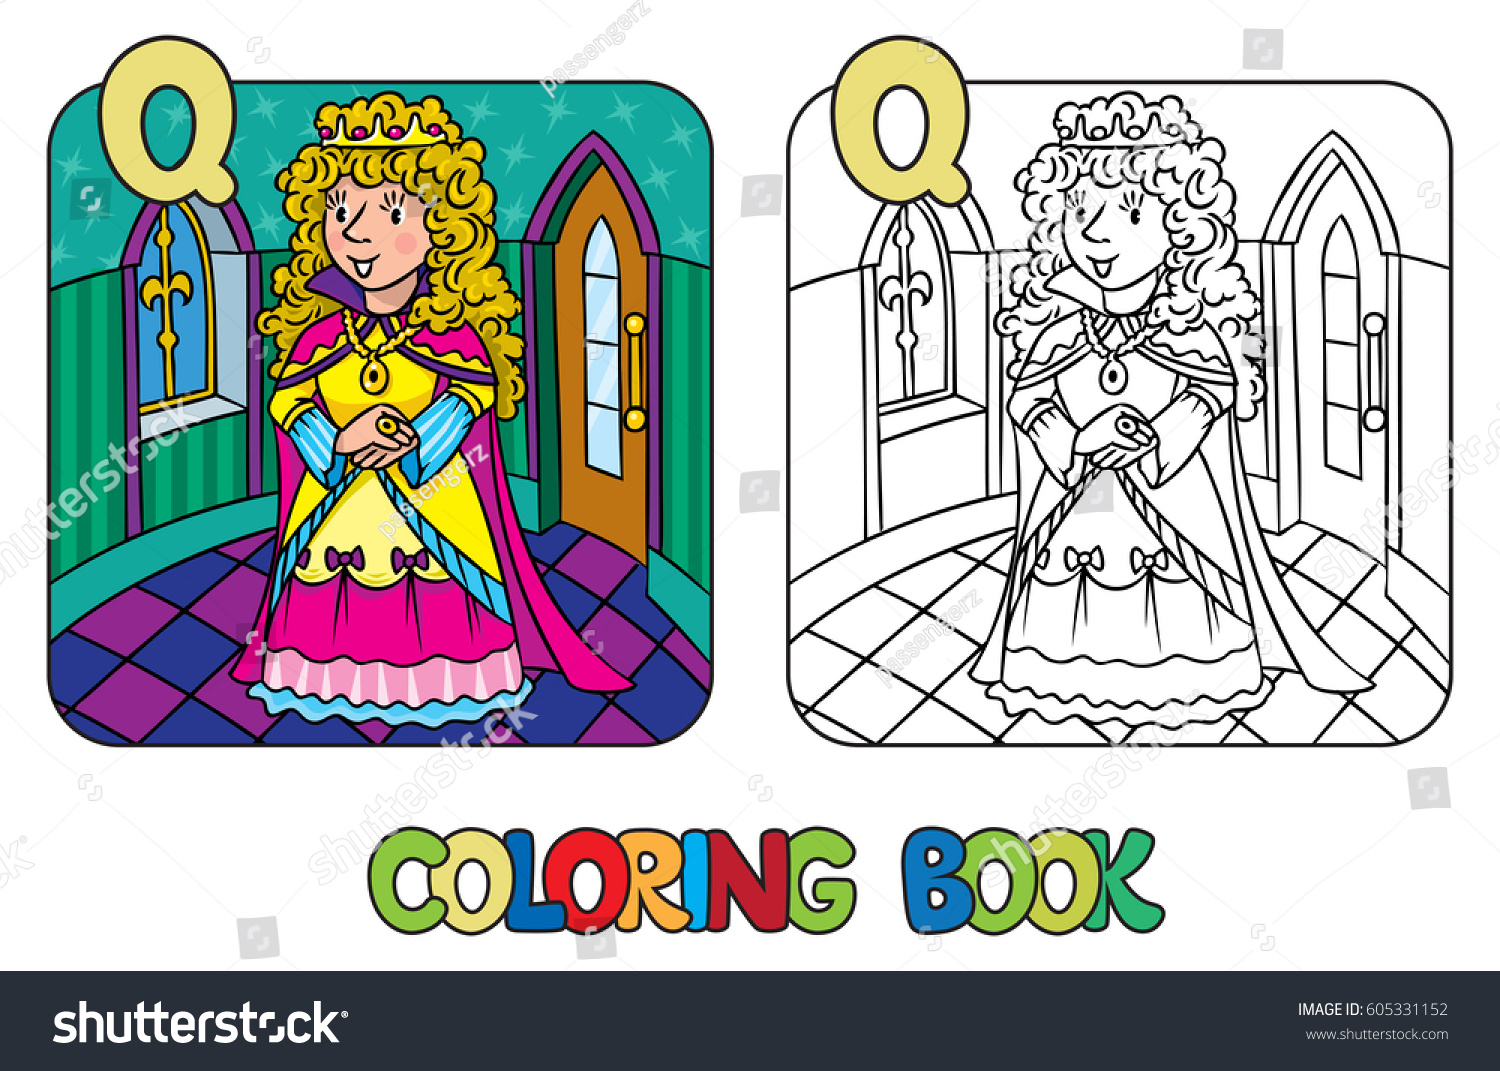 Coloring book princess crowns - Coloring Book Or Coloring Picture Of Queen Or Princess In Medieval Dress The Crown And